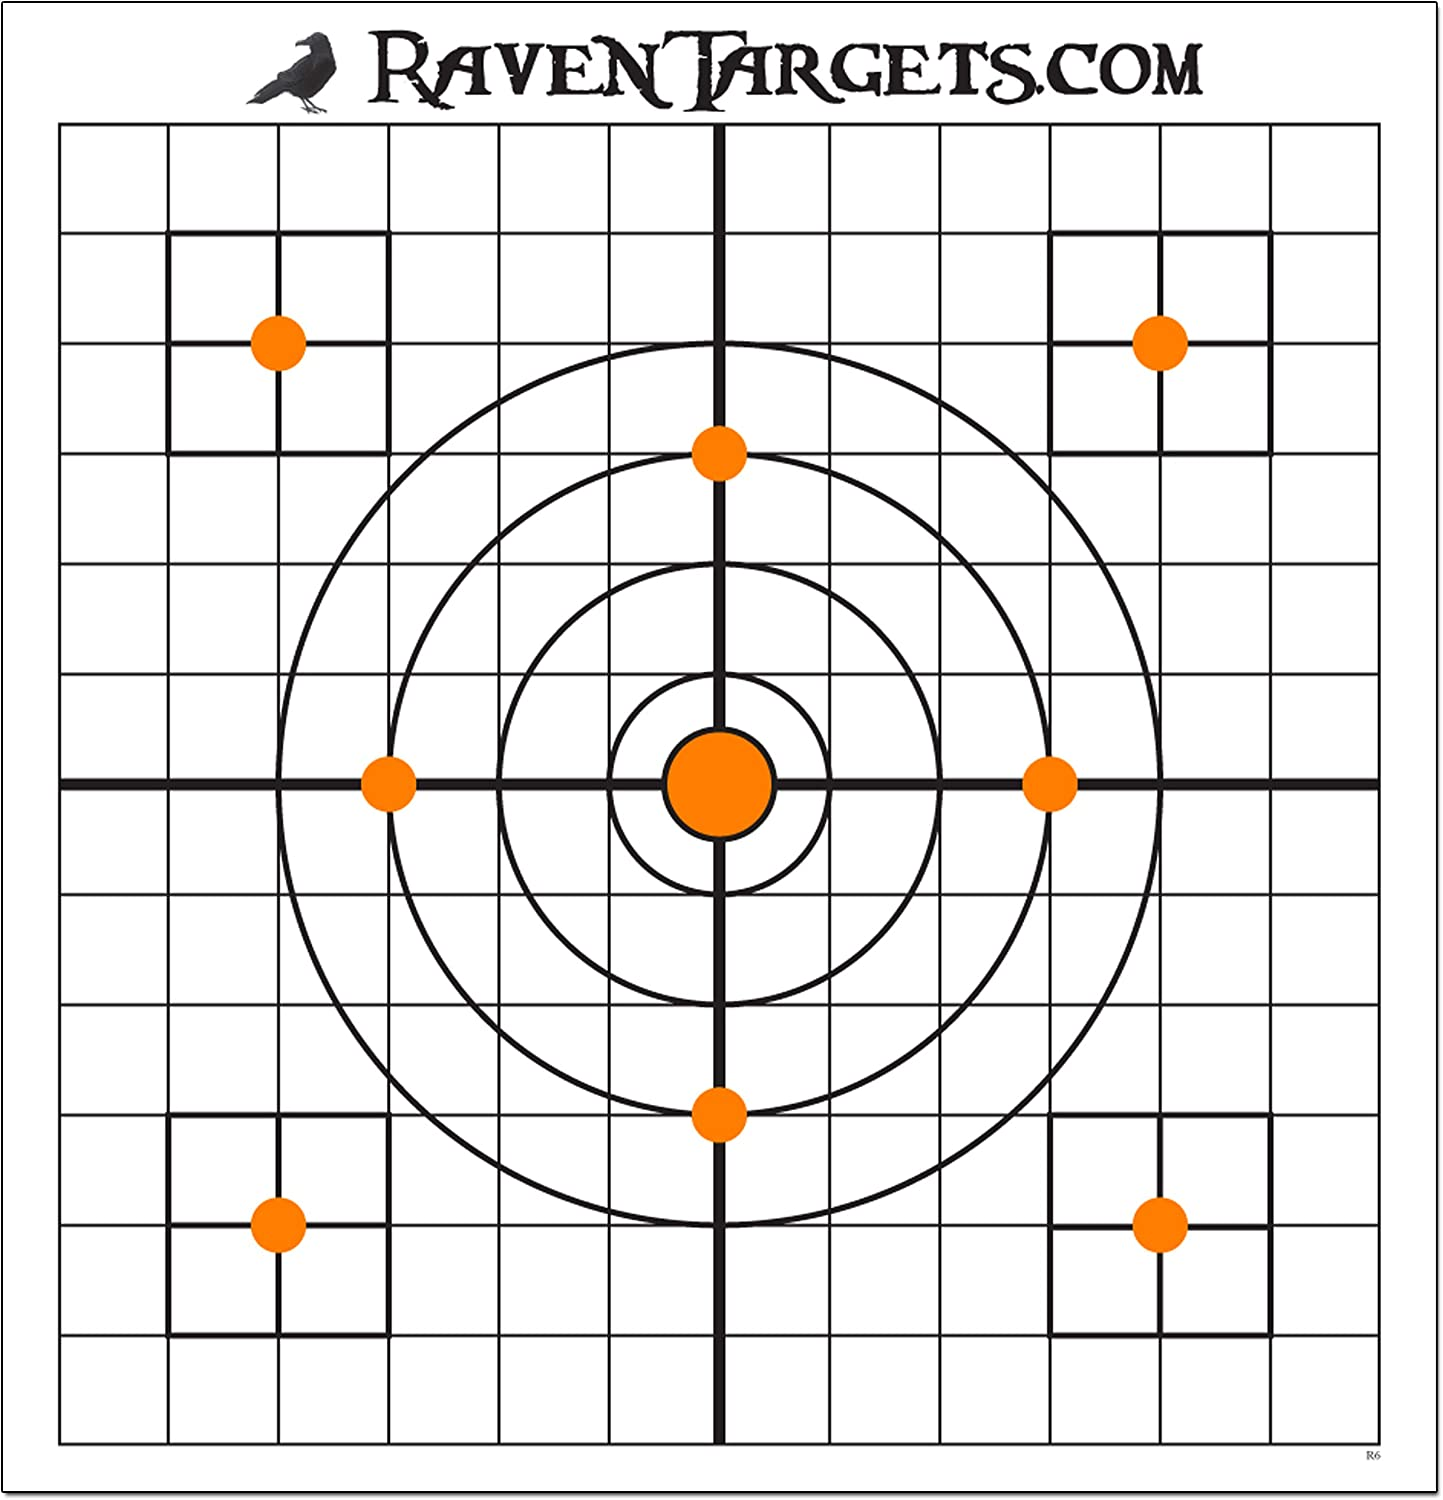 Premium White 80 lb Stock with Super Bright flourescant Orange and Flat Black Inks Multiple Target Zones on Each Target. Made in Canada Raven 12 inch Paper Targets